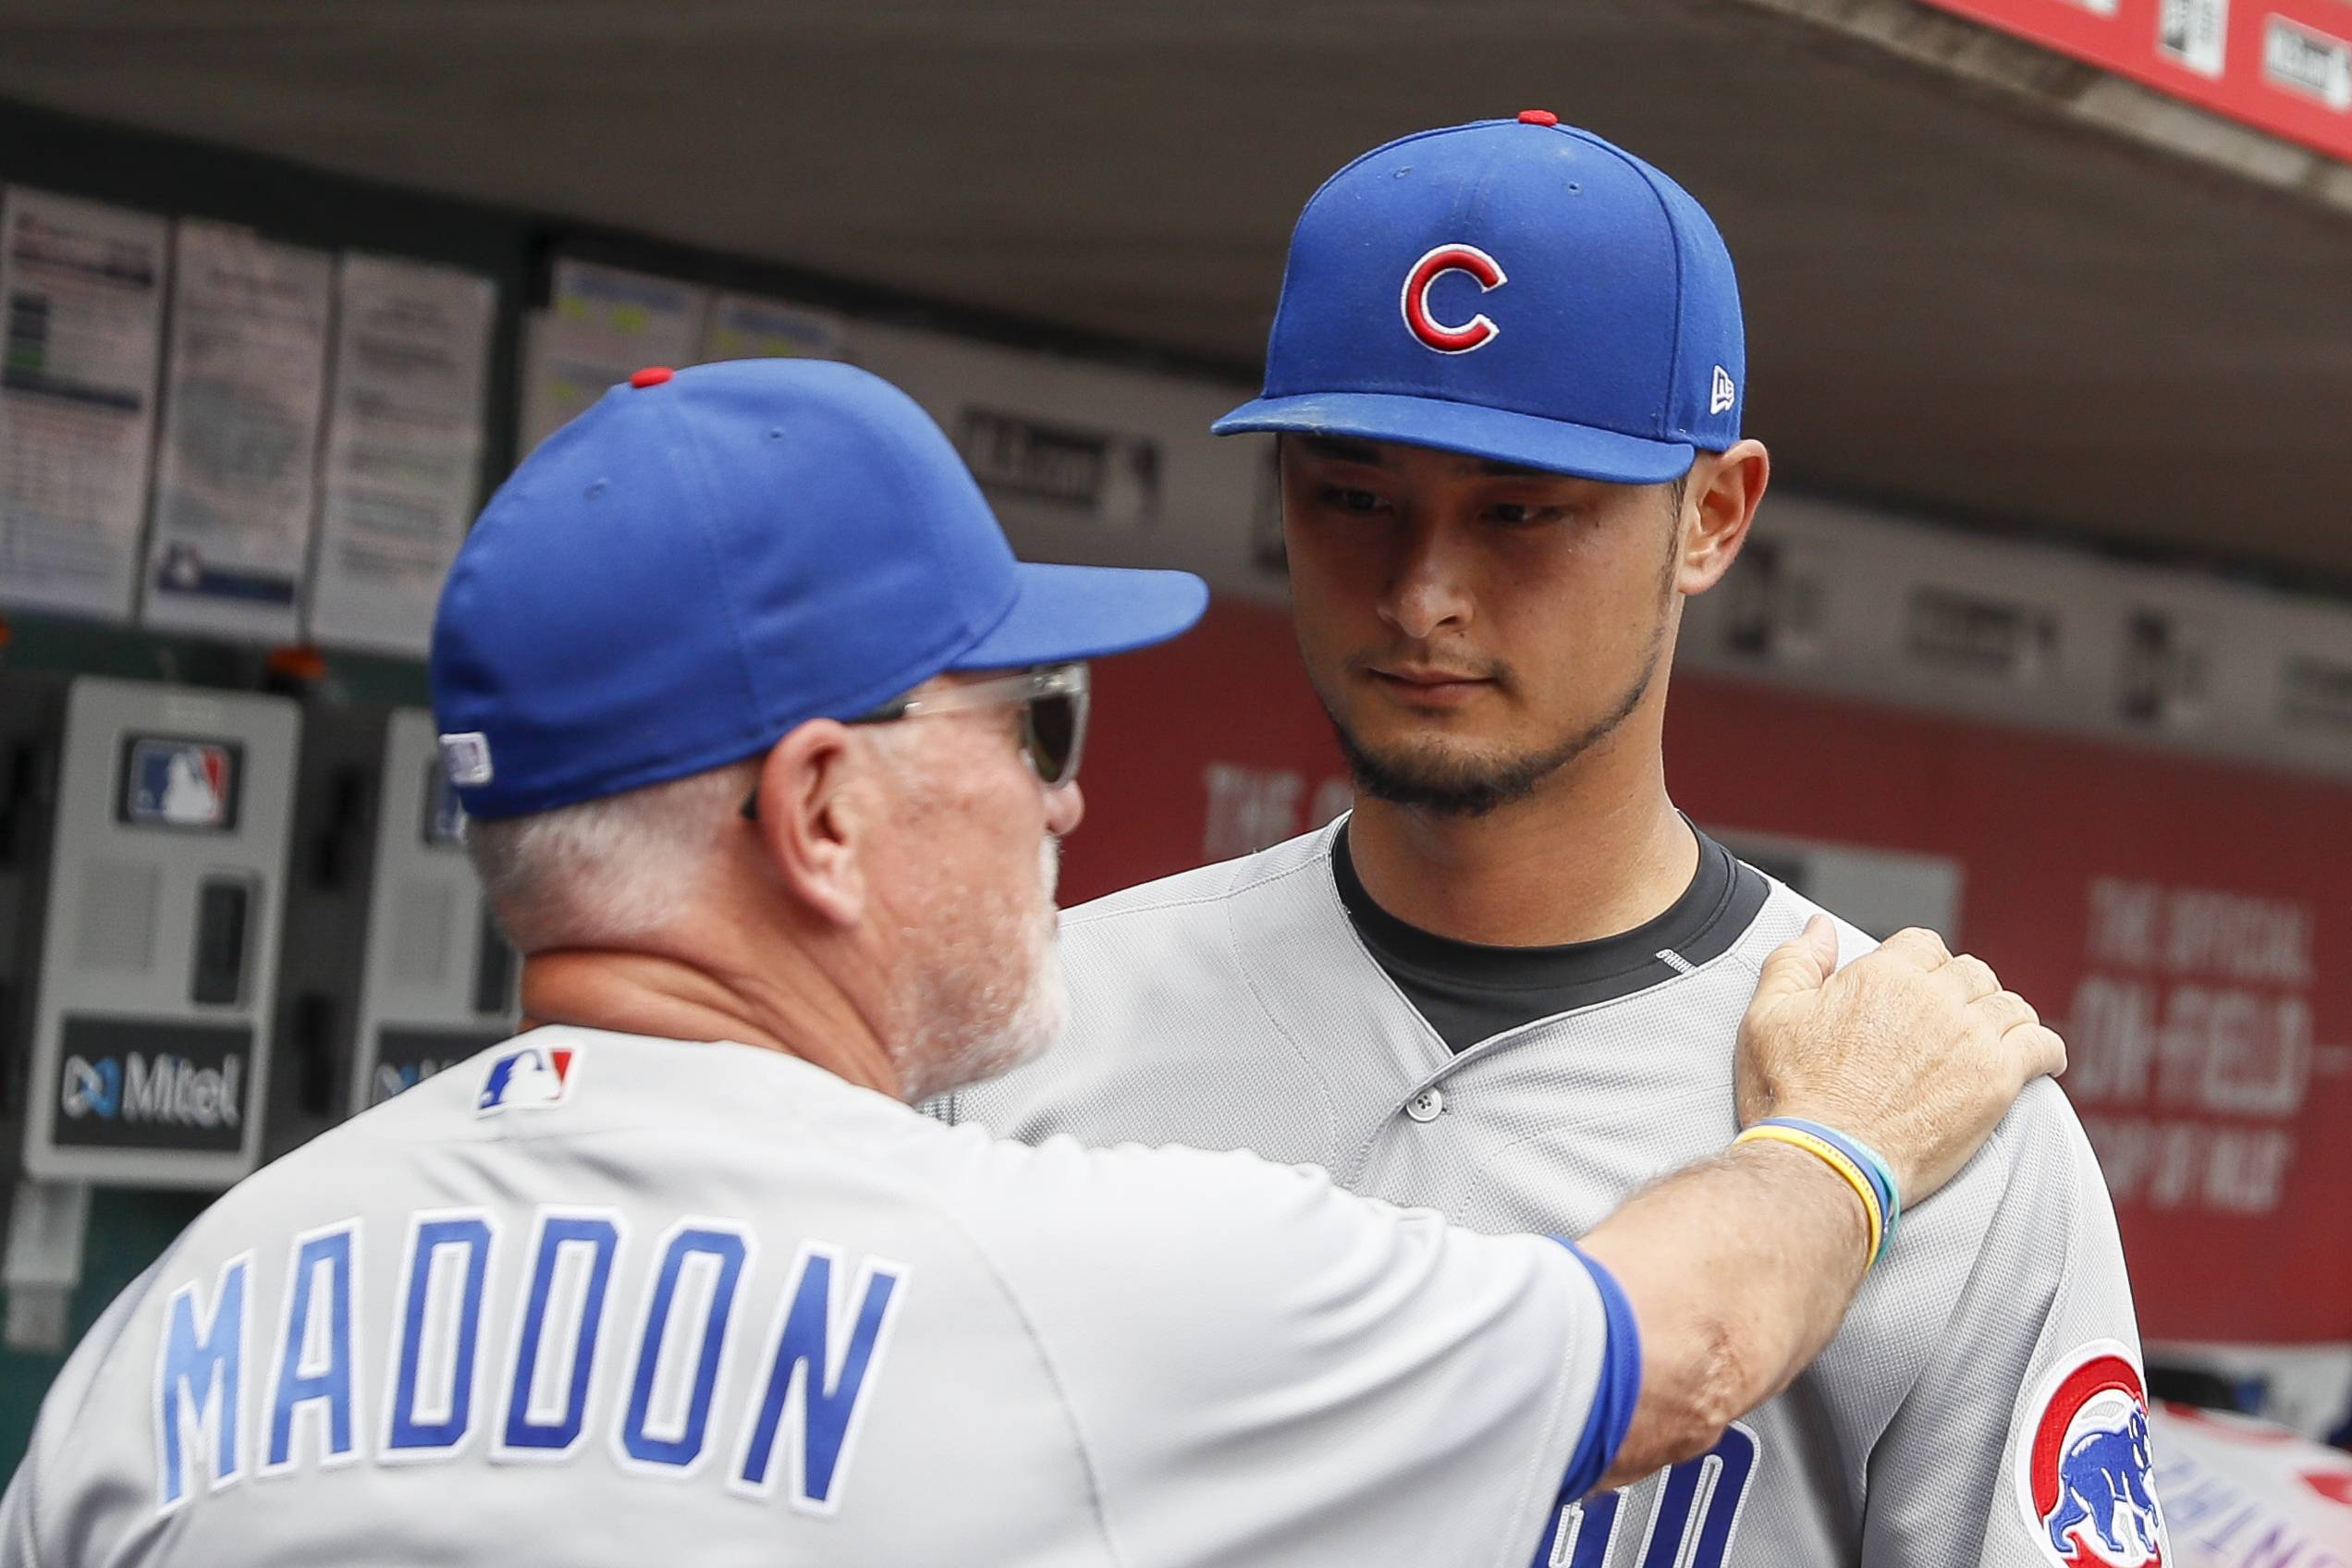 Chicago Cubs starting pitcher Yu Darvish, right, celebrates with manager Joe Maddon, left, in the dugout after closing the sixth inning of a baseball game against the Cincinnati Reds, Sunday, May 20, 2018, in Cincinnati.